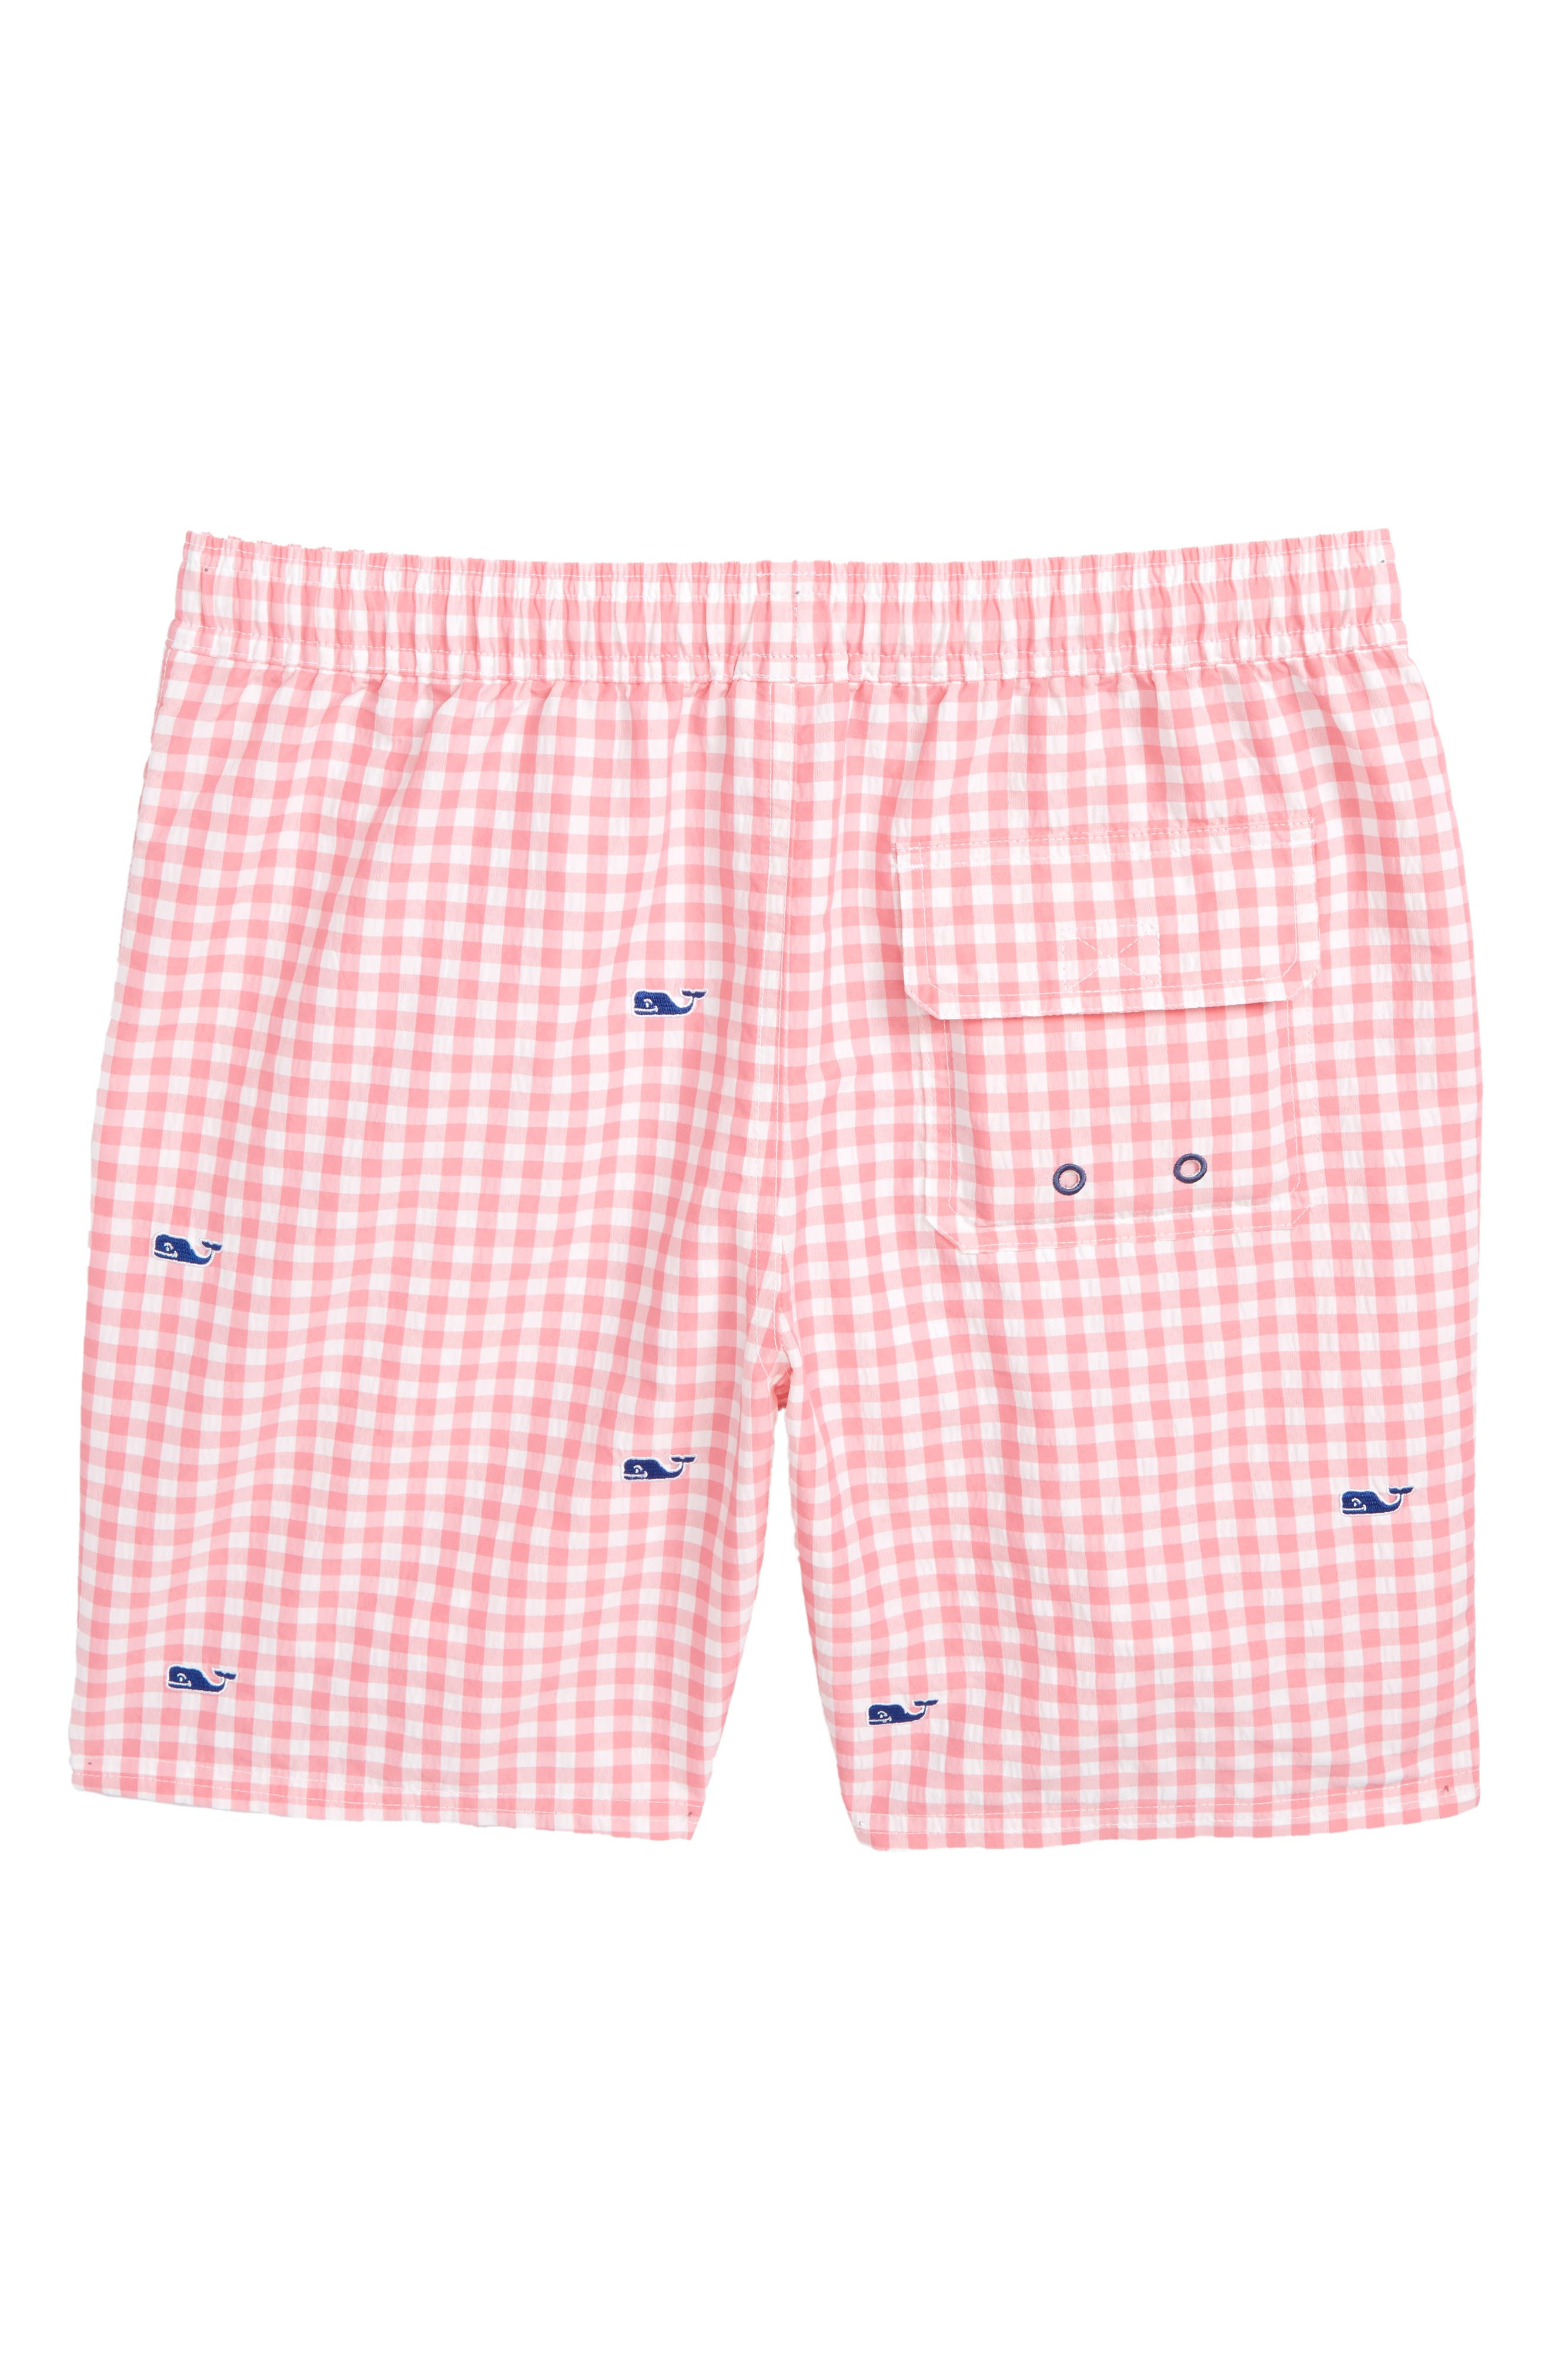 Embroidered Micro Gingham Check Swim Trunks,                             Alternate thumbnail 2, color,                             Bahama Breeze